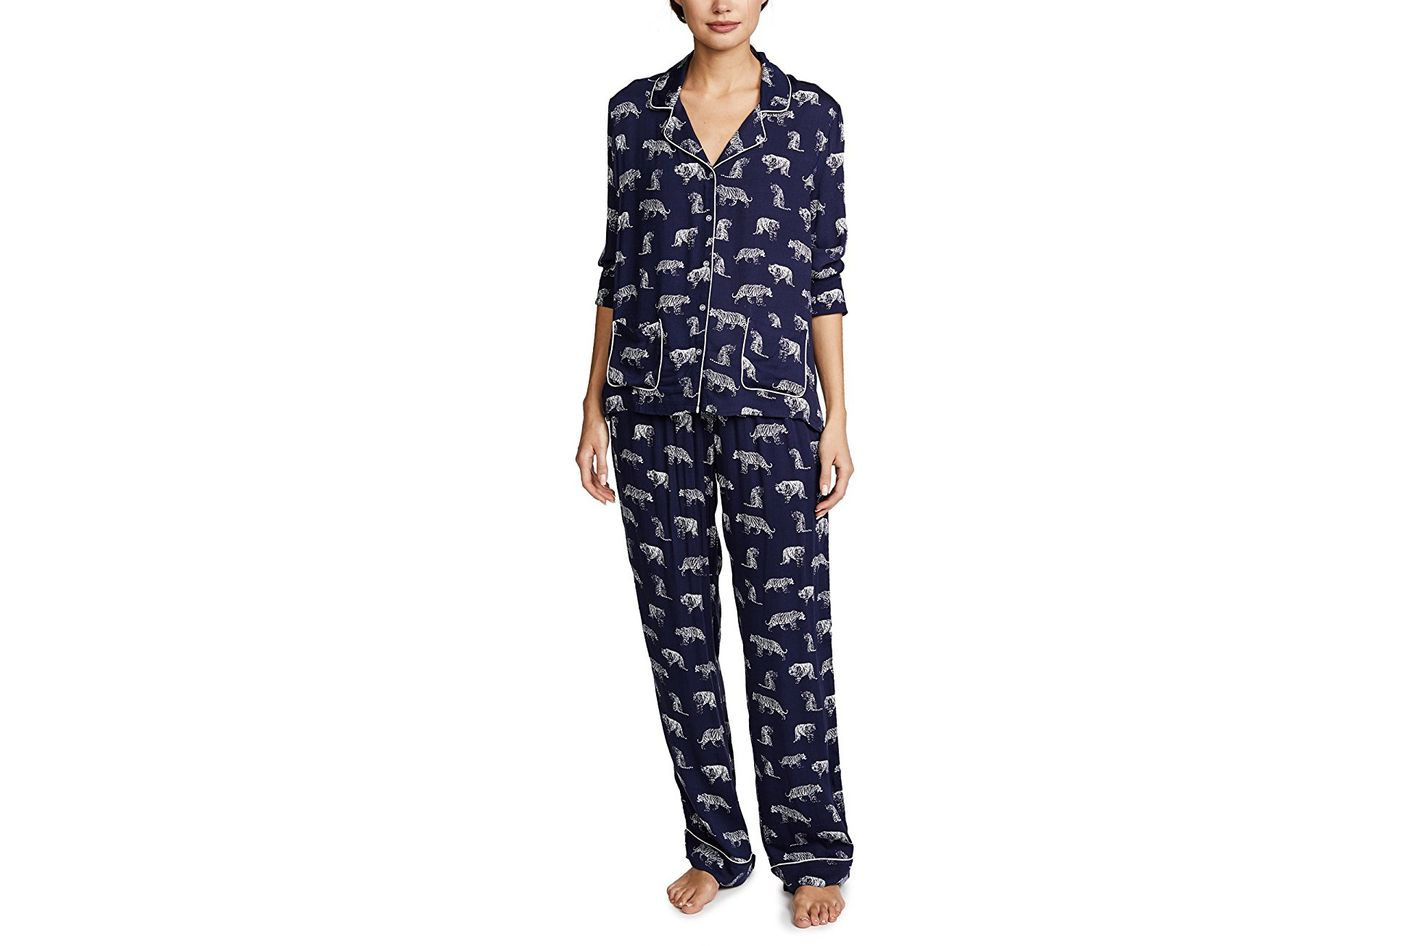 841b0c1d49b1 Splendid Gentle Tiger PJ Set